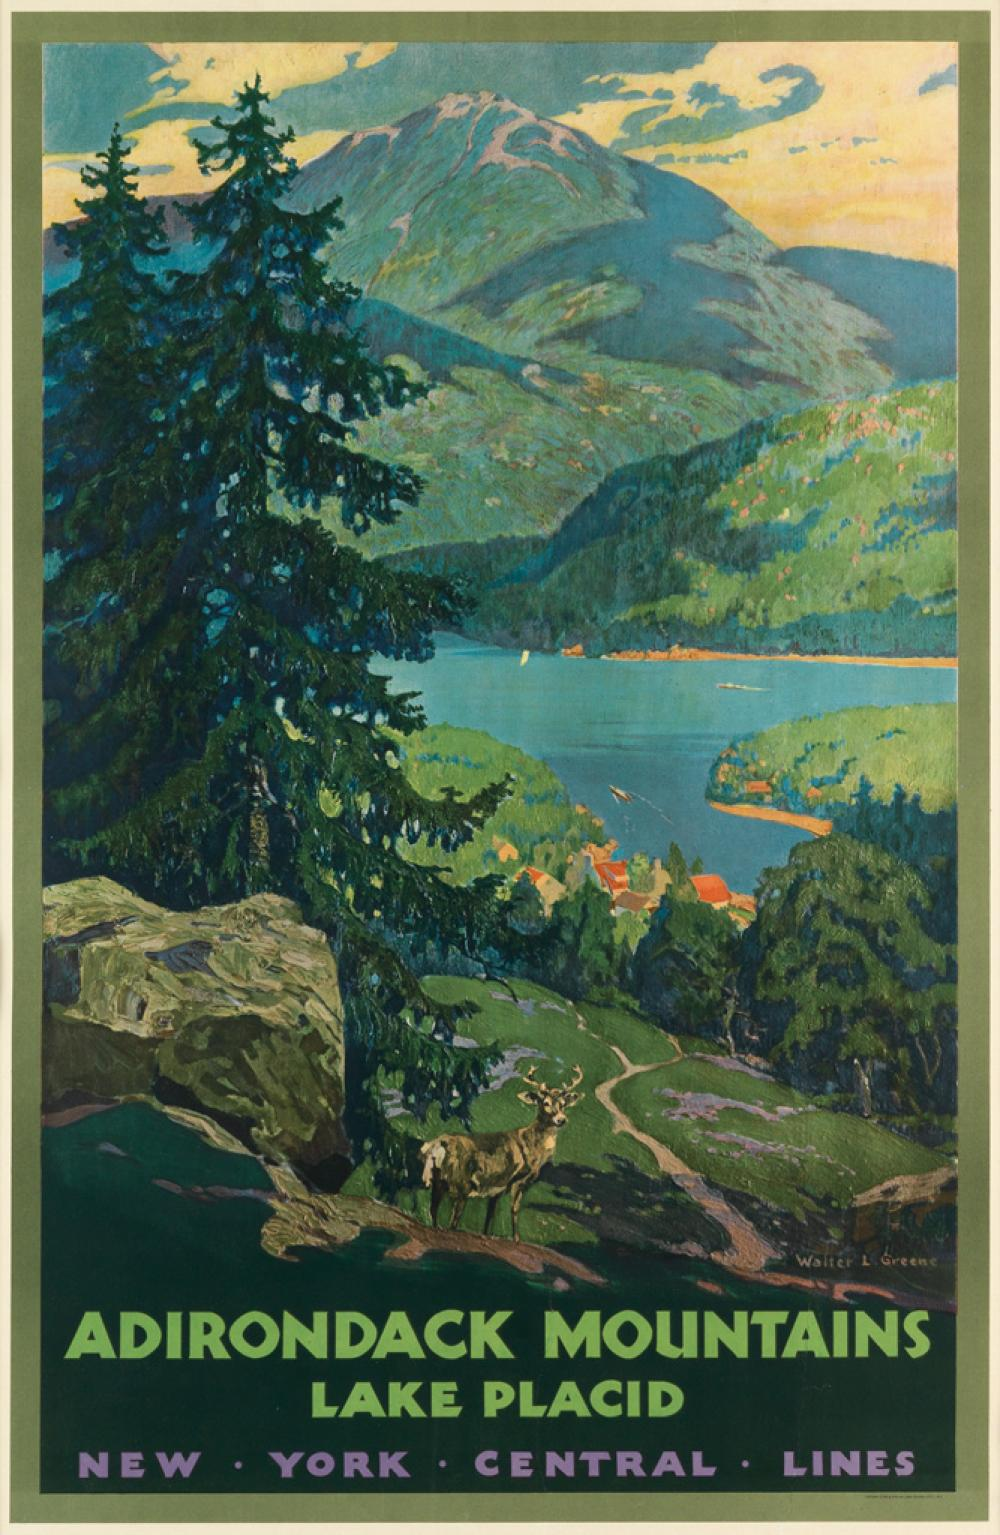 WALTER L. GREENE (1870-1956). ADIRONDACK MOUNTAINS / LAKE PLACID. Circa 1935. 40x26 inches, 102x66 cm. Latham Litho & Ptg. Co., Long Is